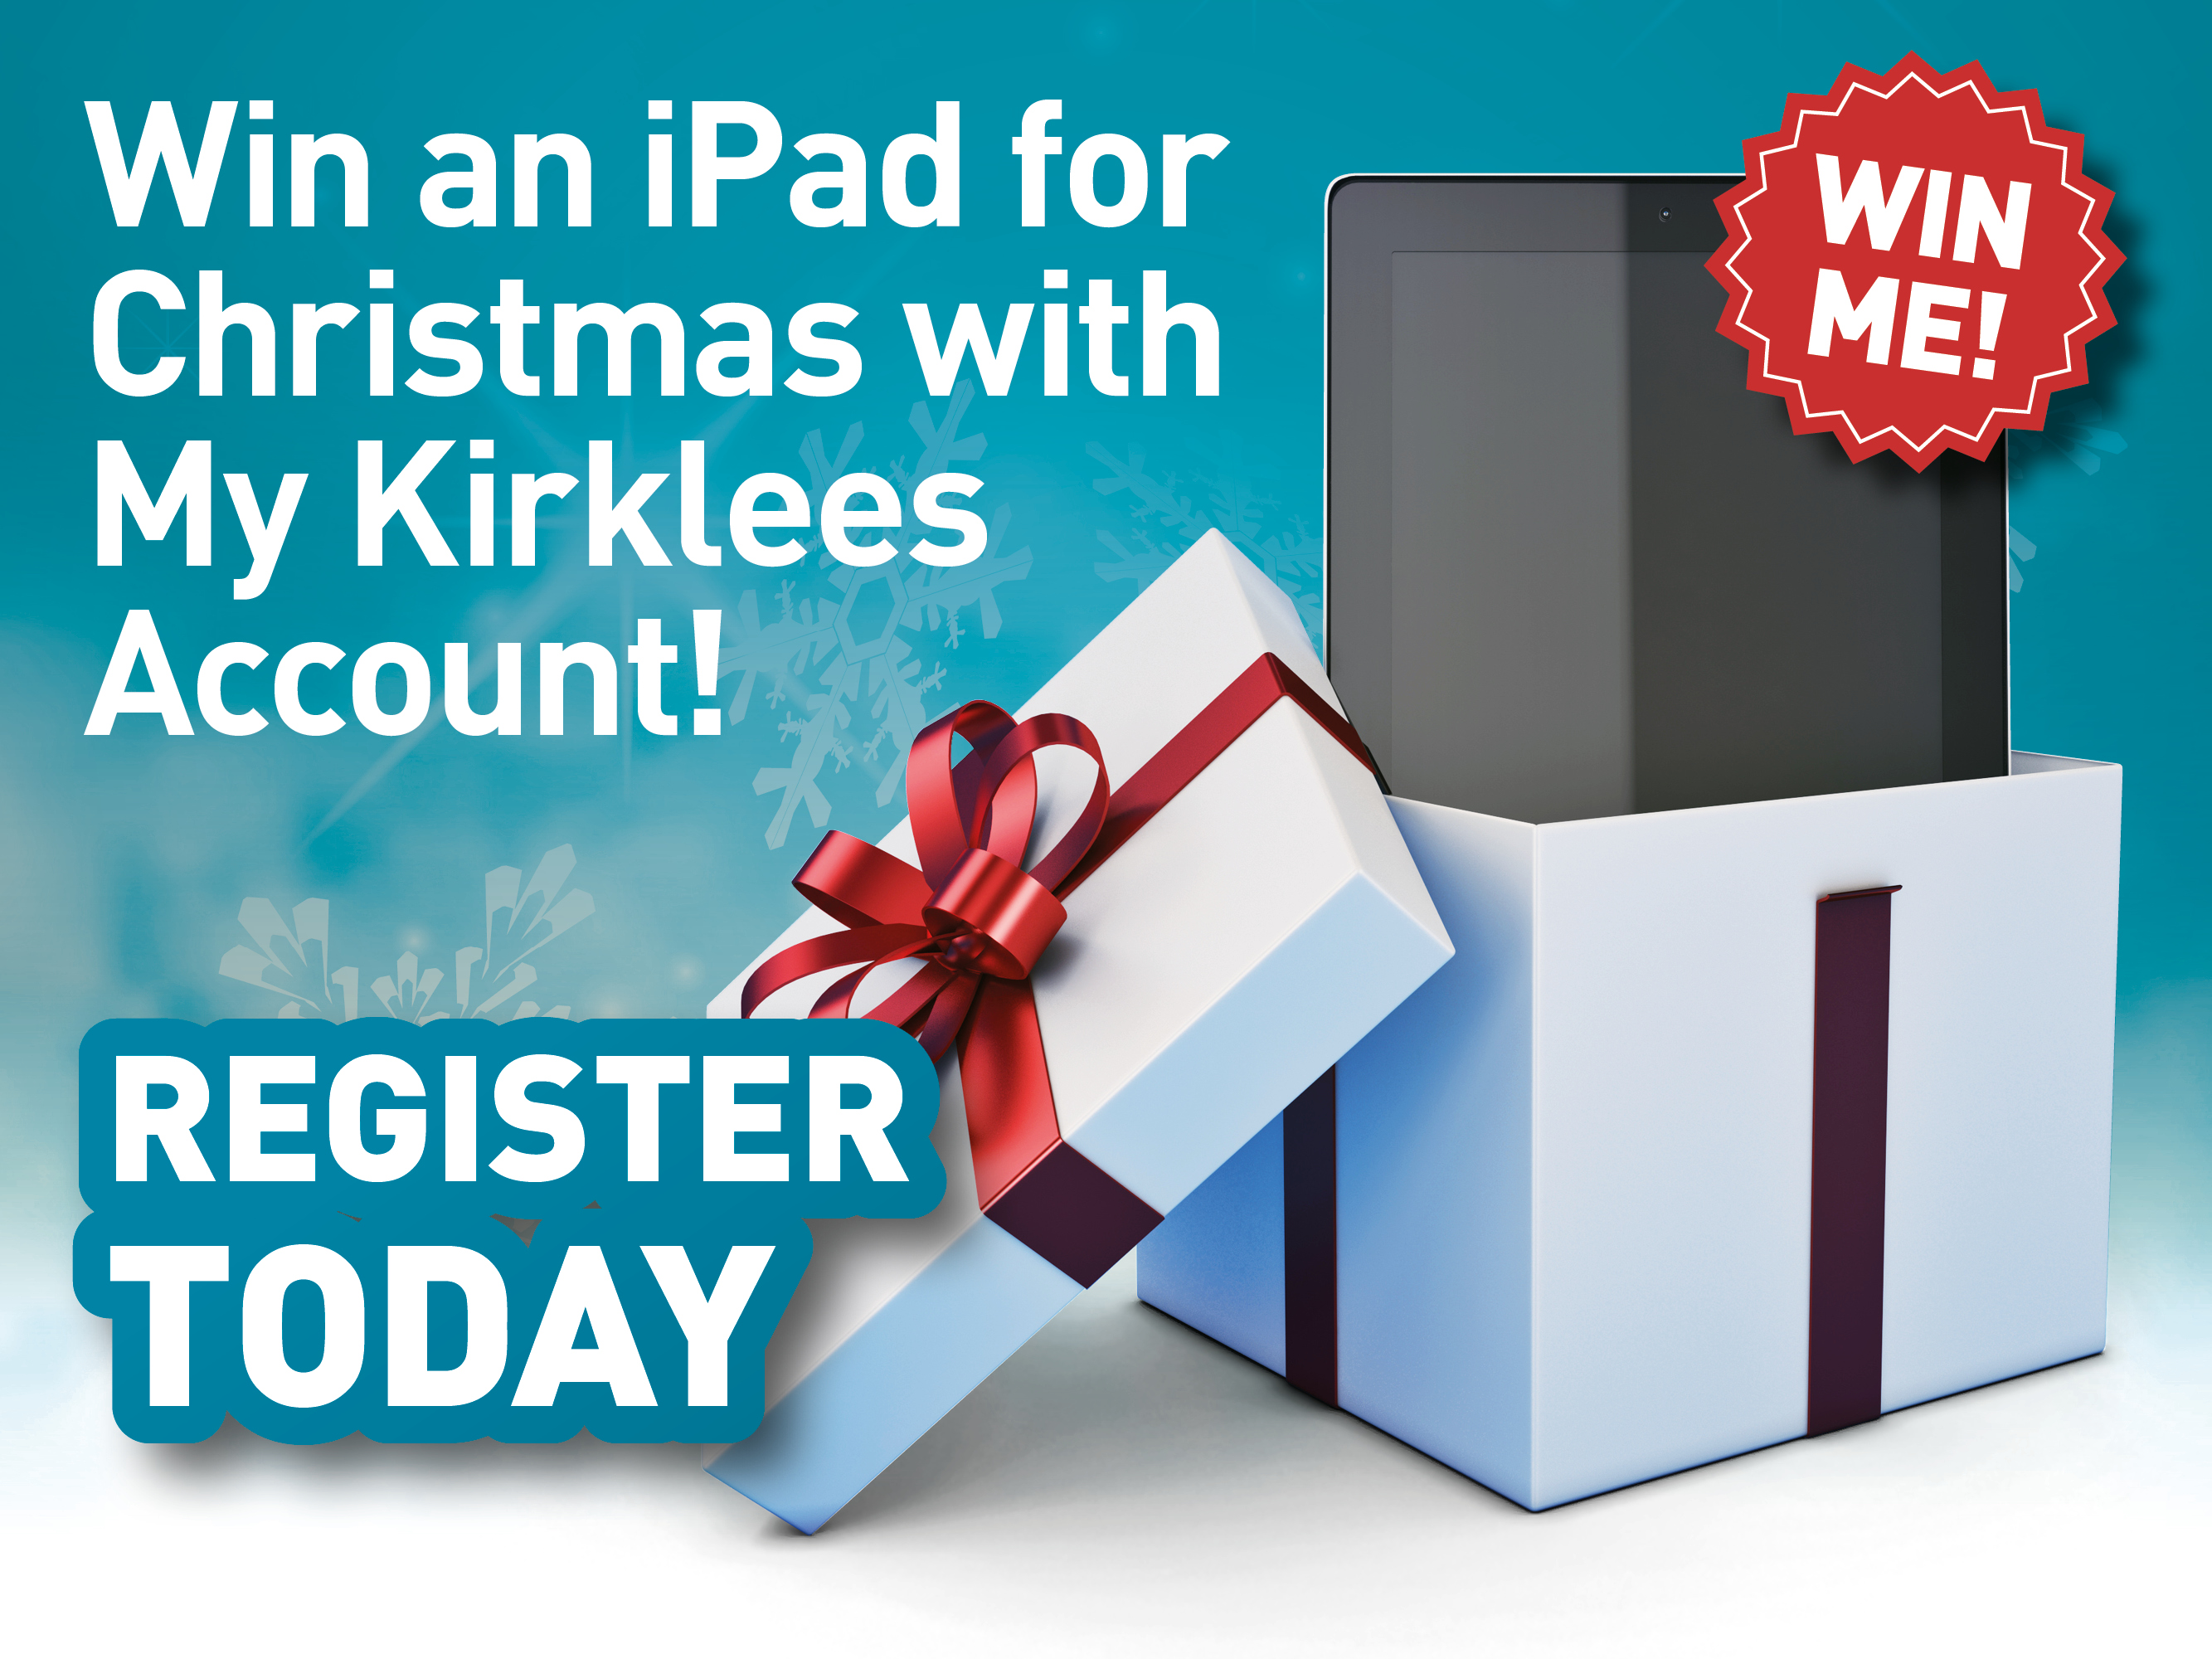 Register to win an ipad